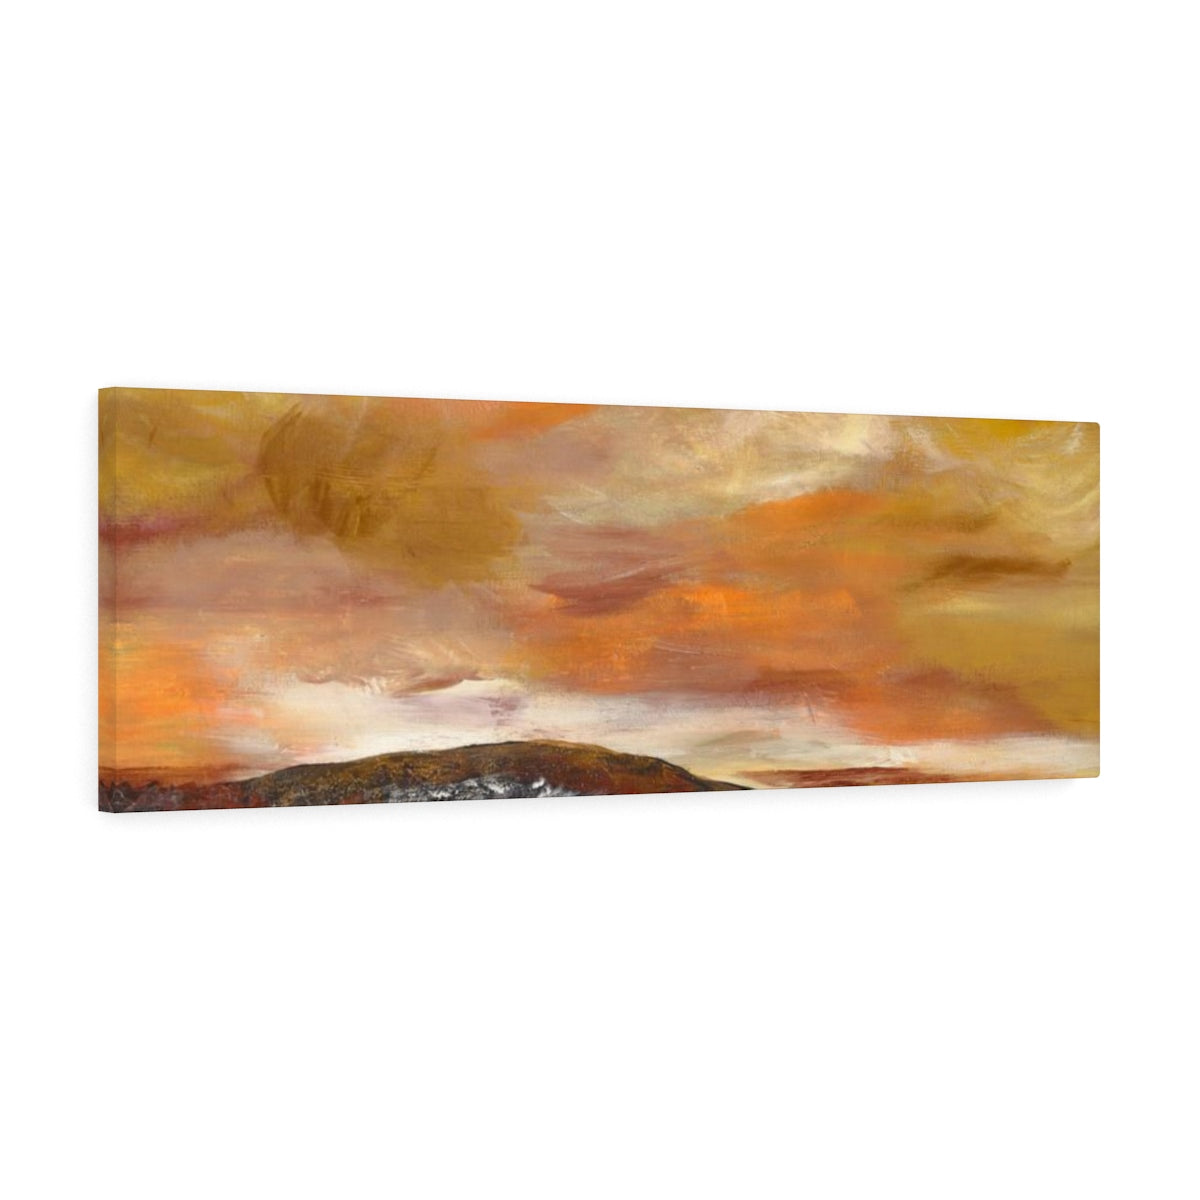 "GOLDEN VALLEY  Canvas Gallery Wraps  10"" x 8"""